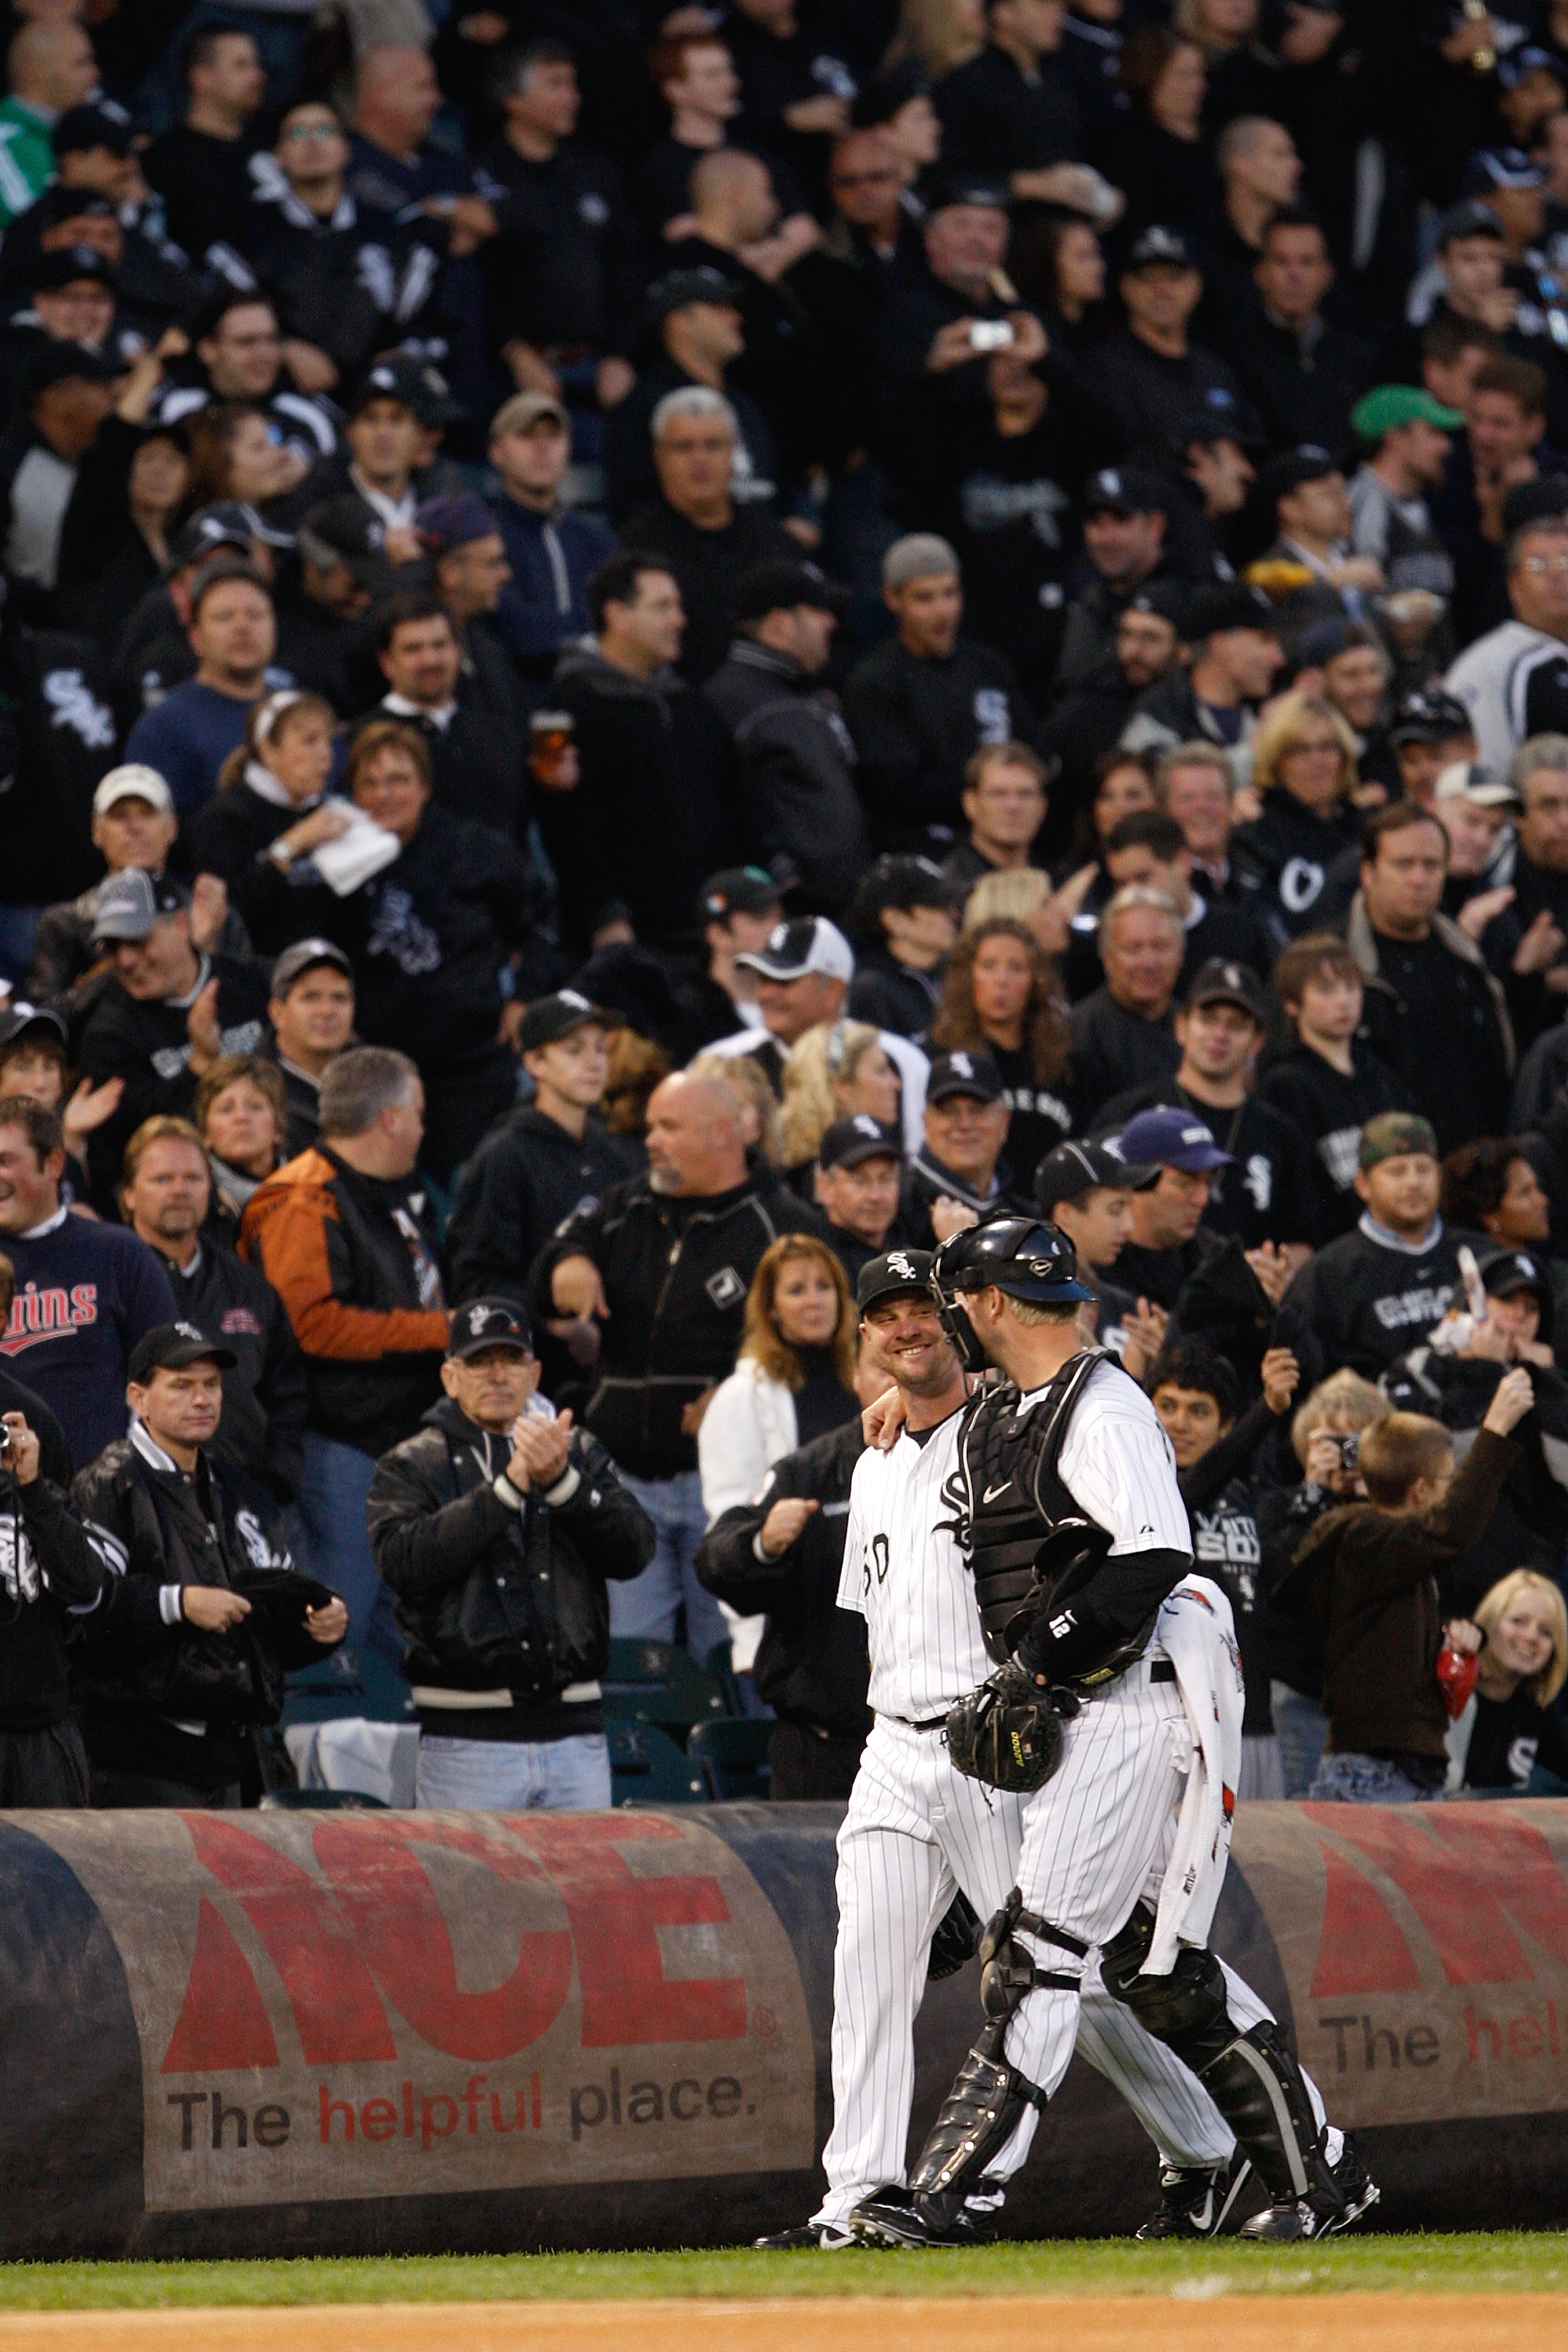 John Danks and A.J. Pierzynski of the White Sox walk past fans, who are all dressed in black, before the 2008 American League Central Division tiebreaker game against the Twins.